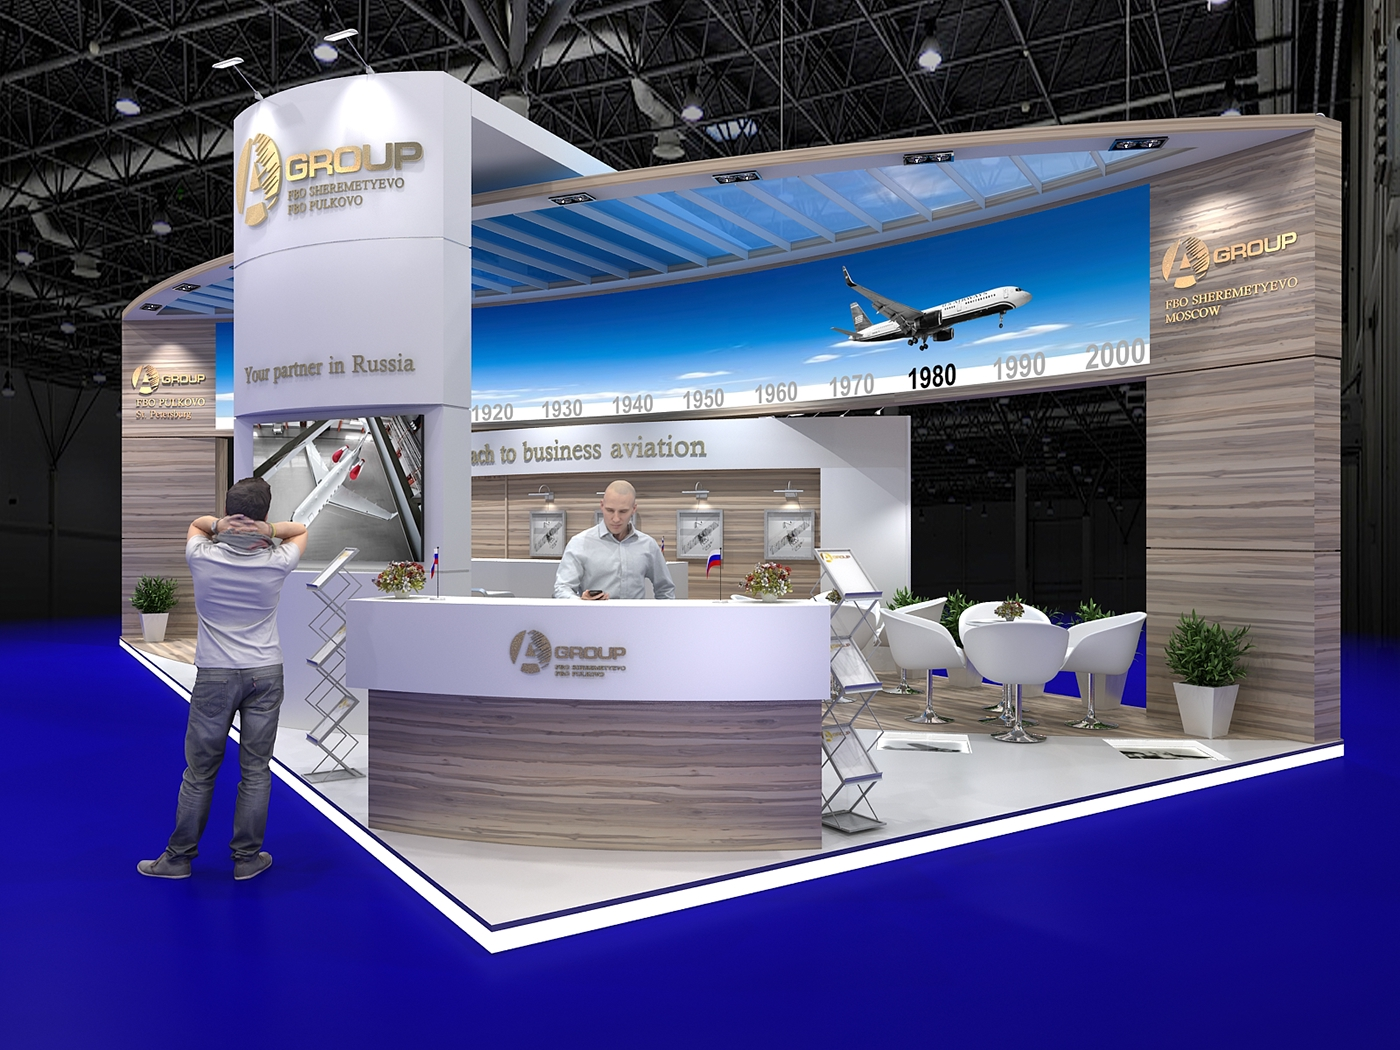 Expo Exhibition Stands Group : A group ebace on behance